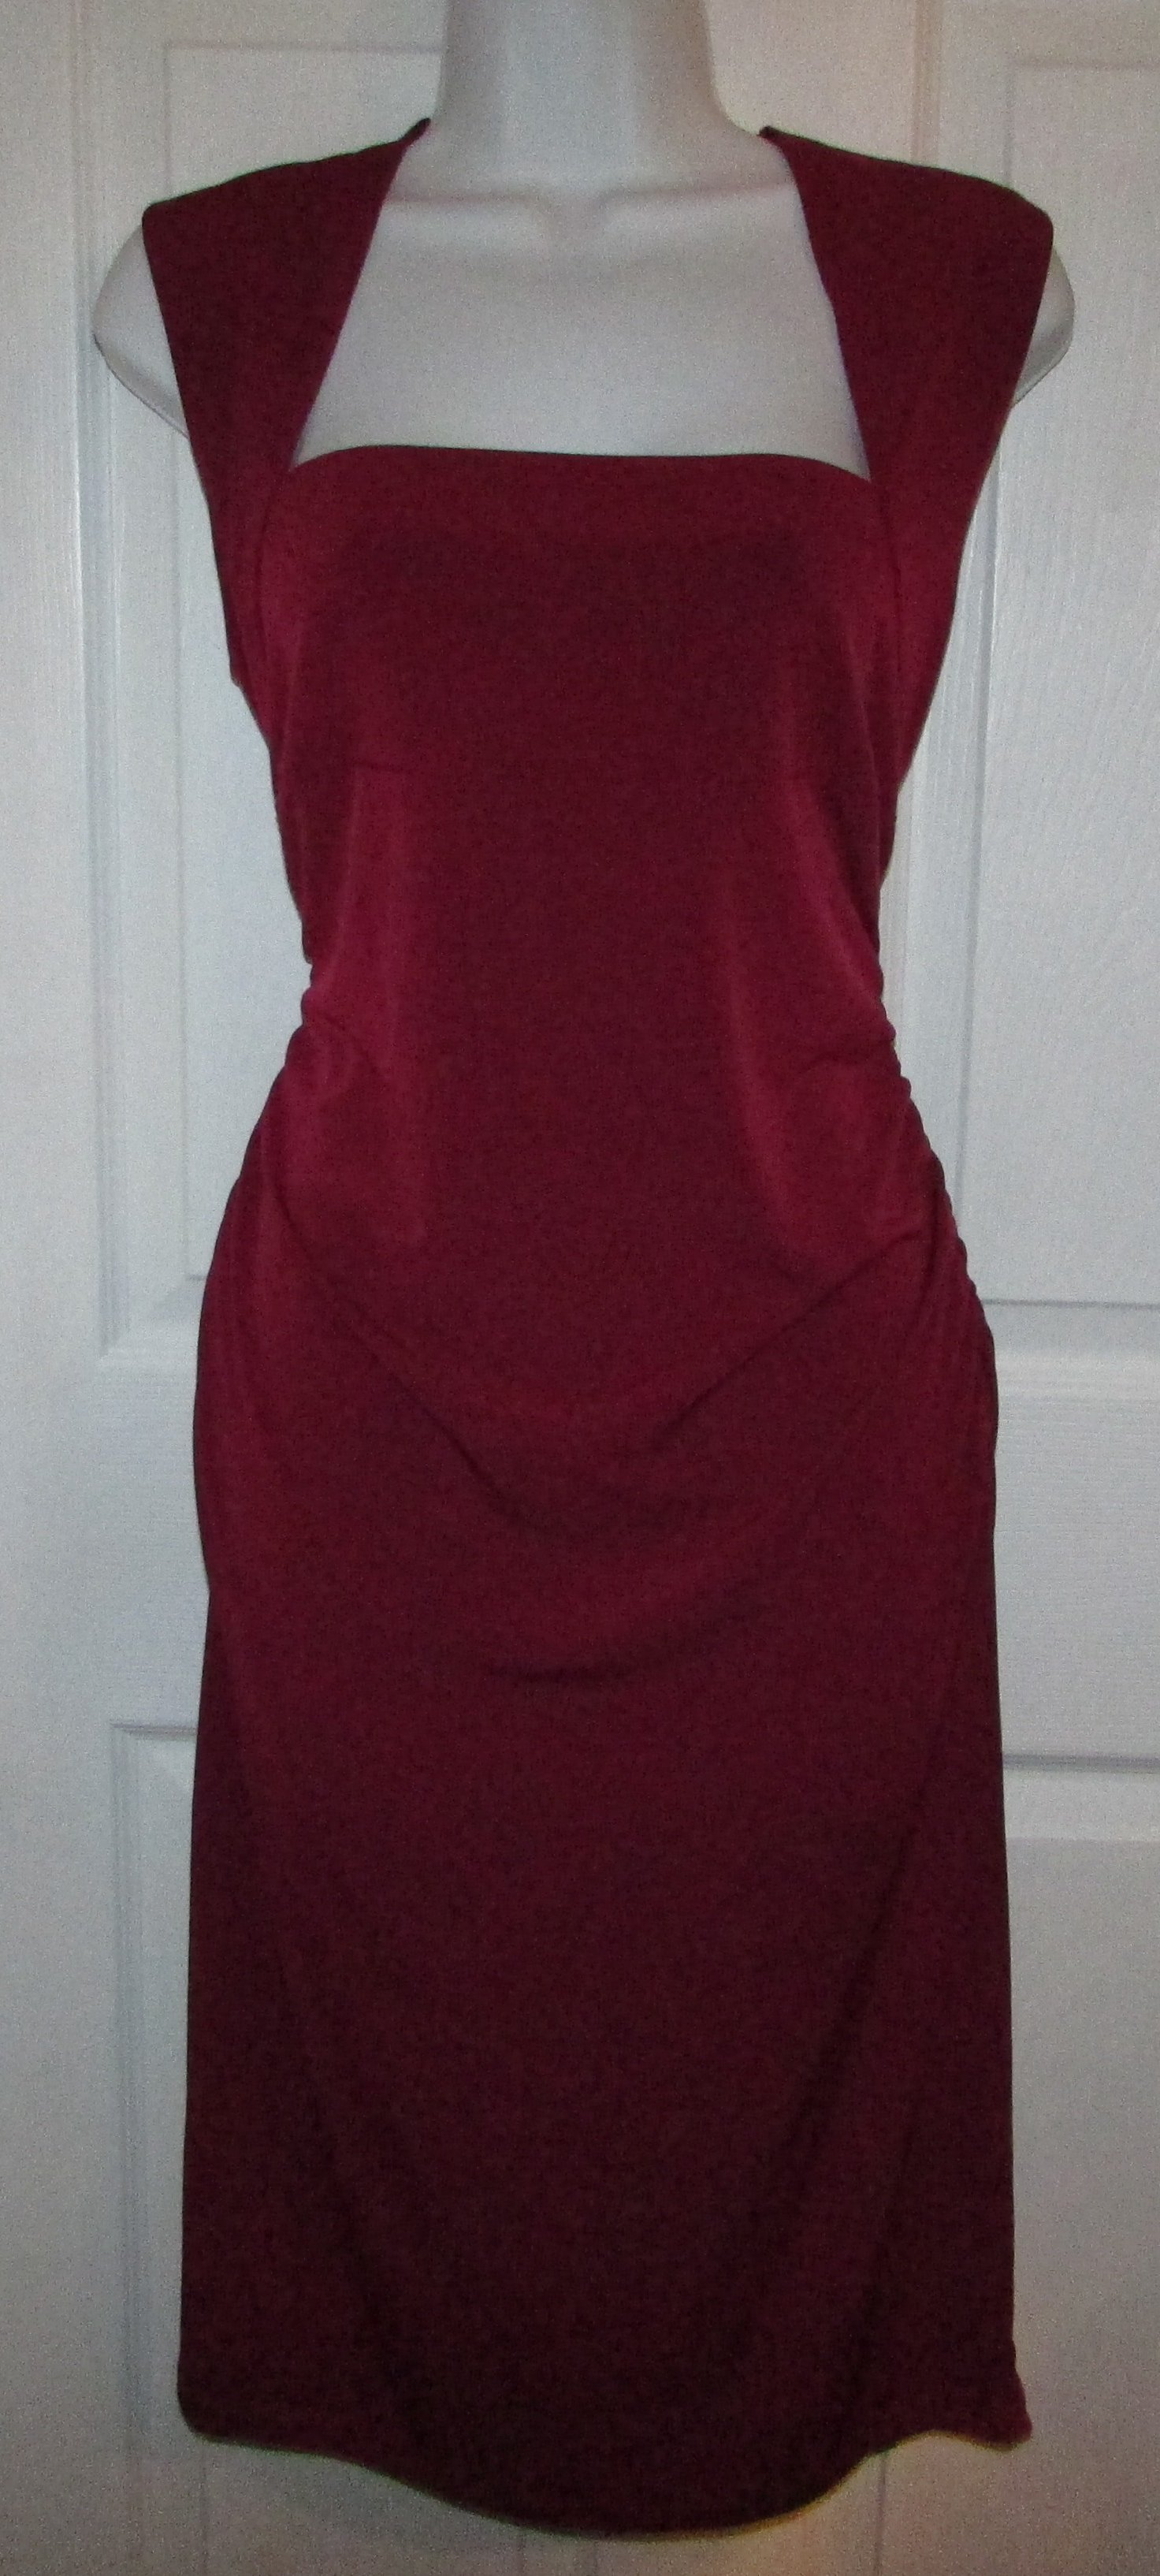 MODA INTERNATIONAL Deep Red Stretch Knit Fitted Dress - Large